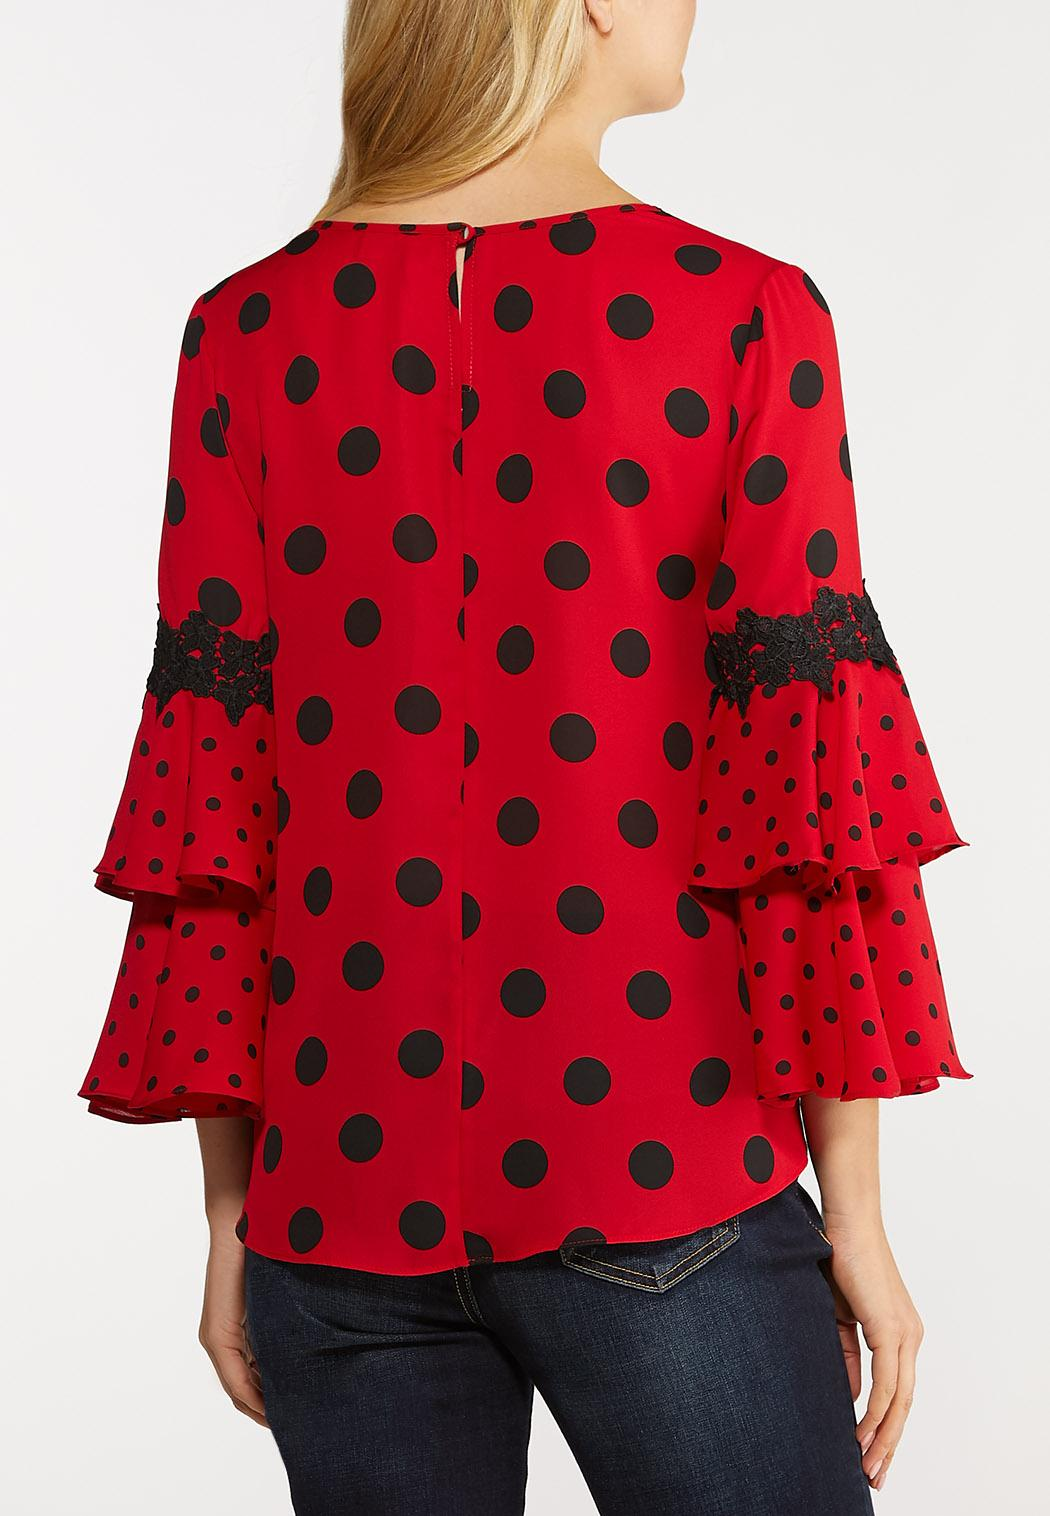 Dotted Ruffled Sleeve Top (Item #44124718)